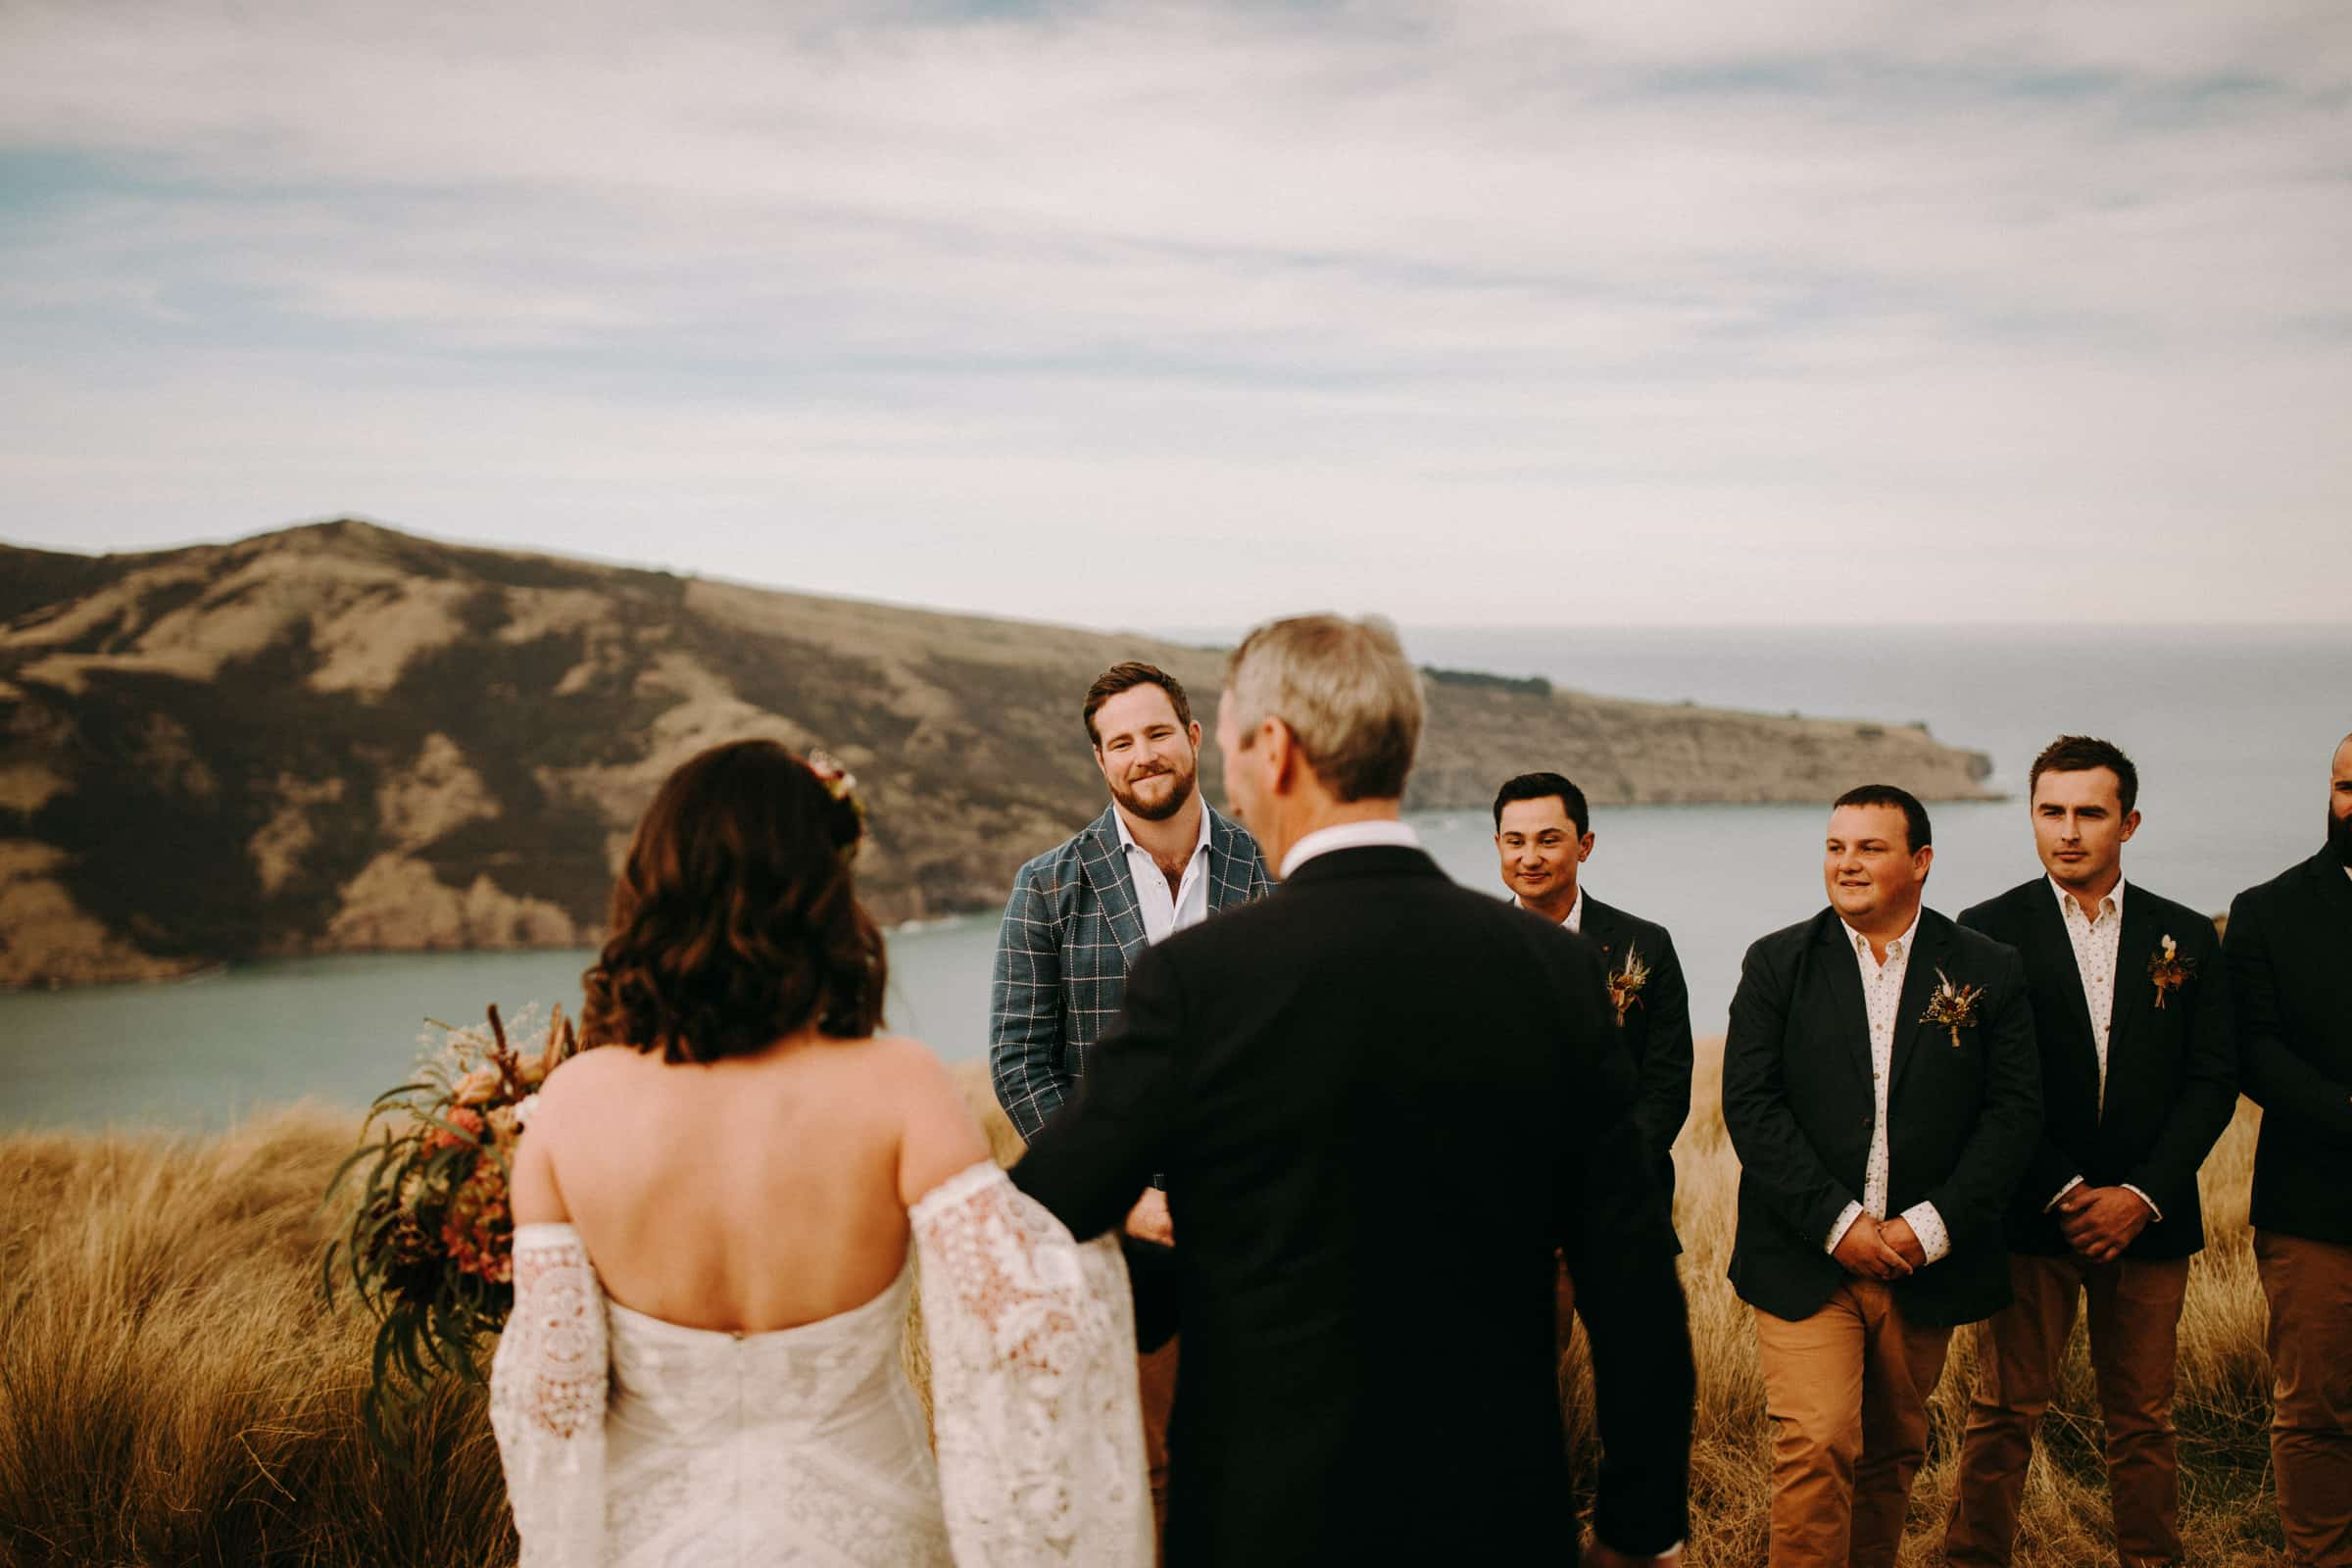 A bride and her father are standing in front of her groom and his groomsmen.